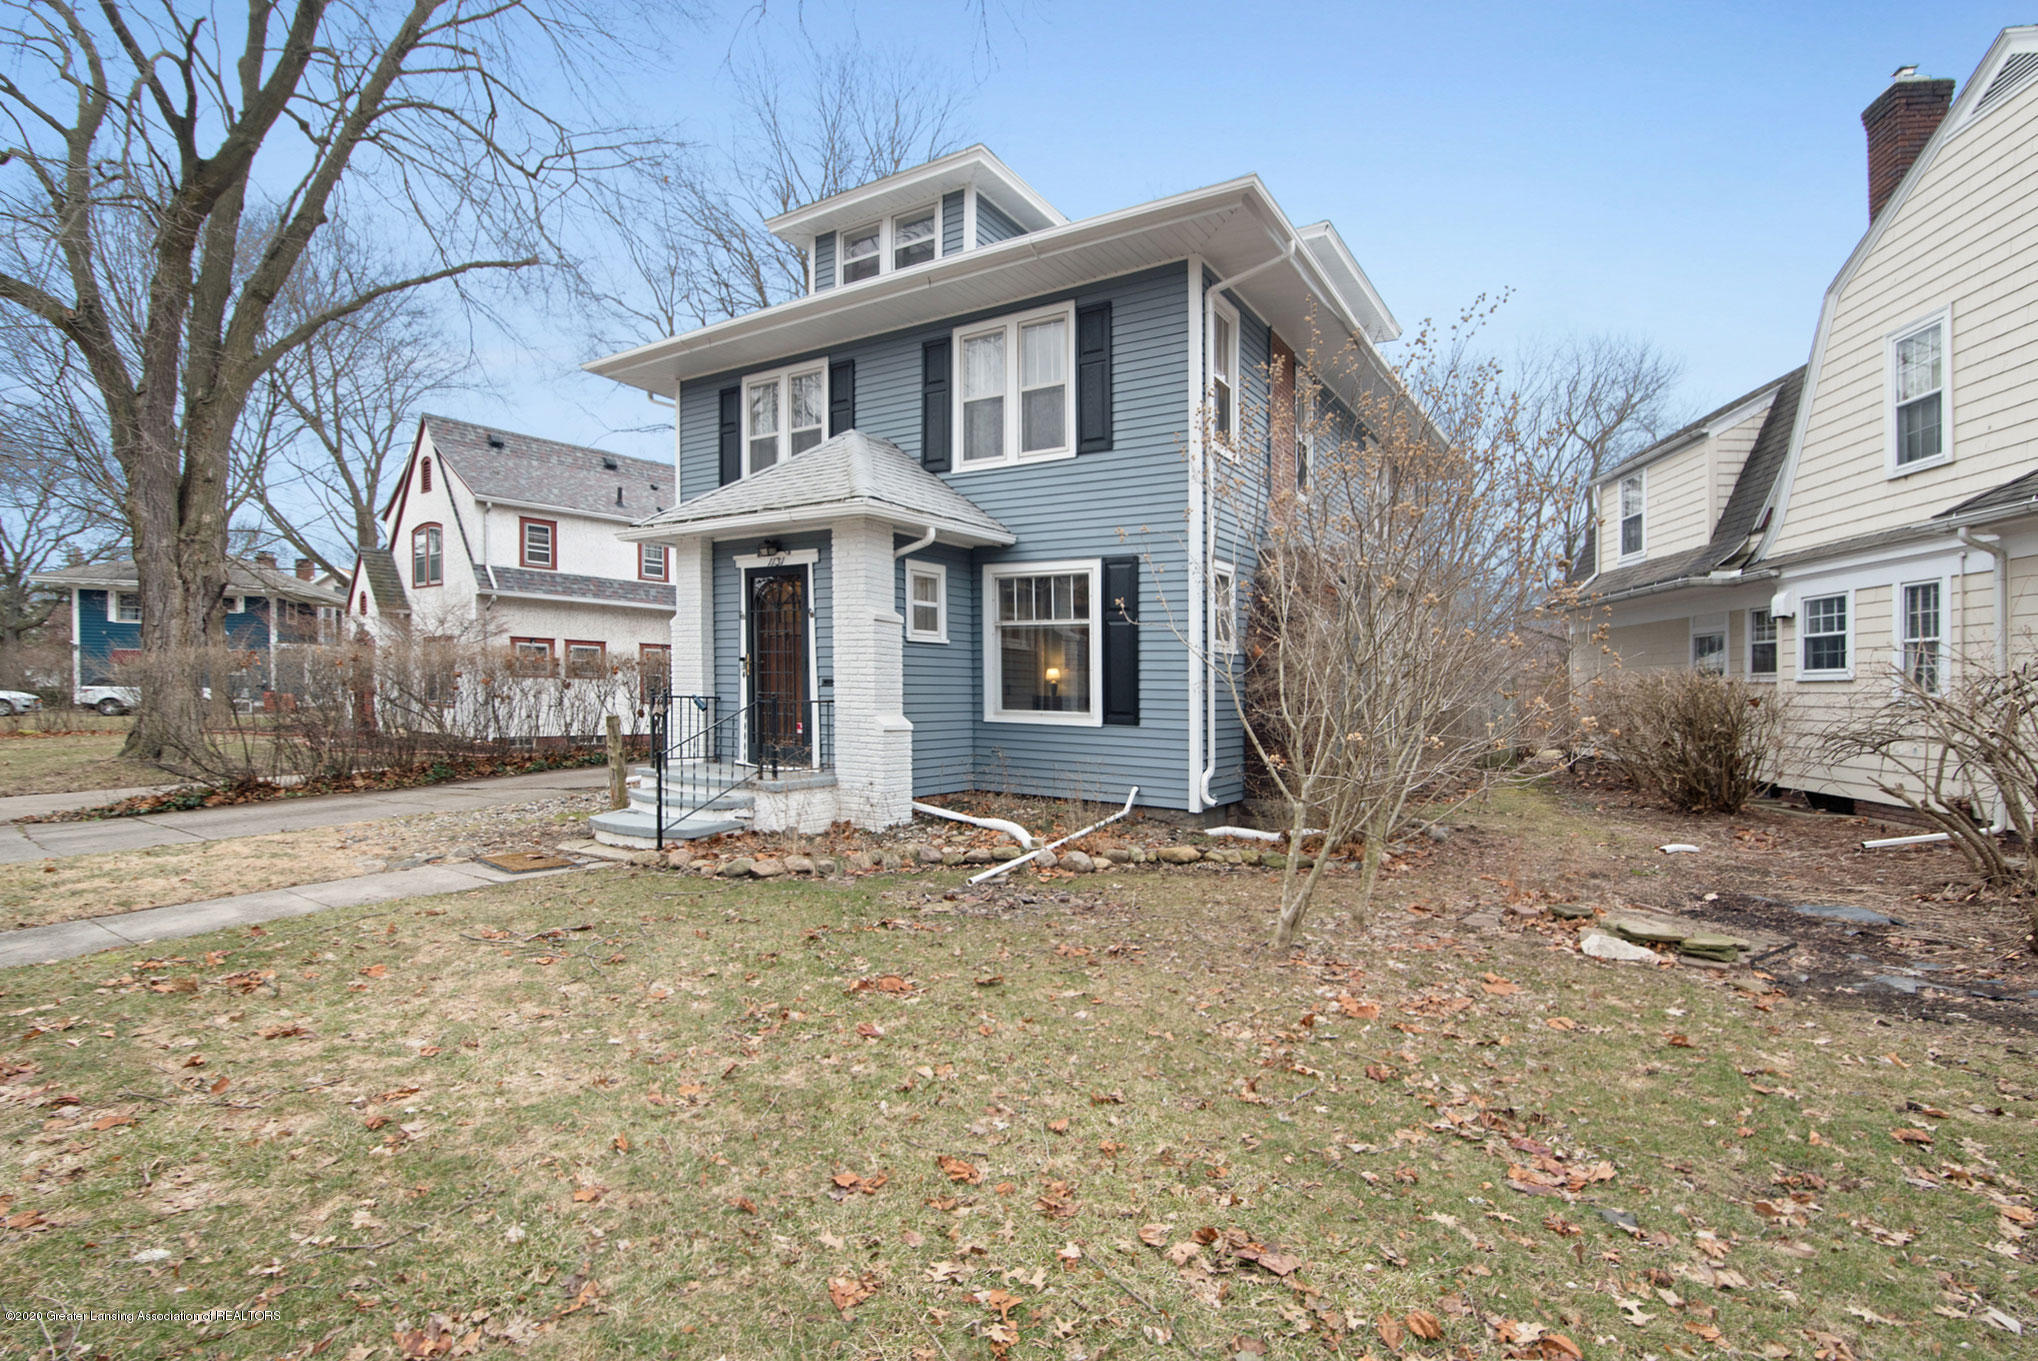 1131 S Genesee Dr - 31 - 31